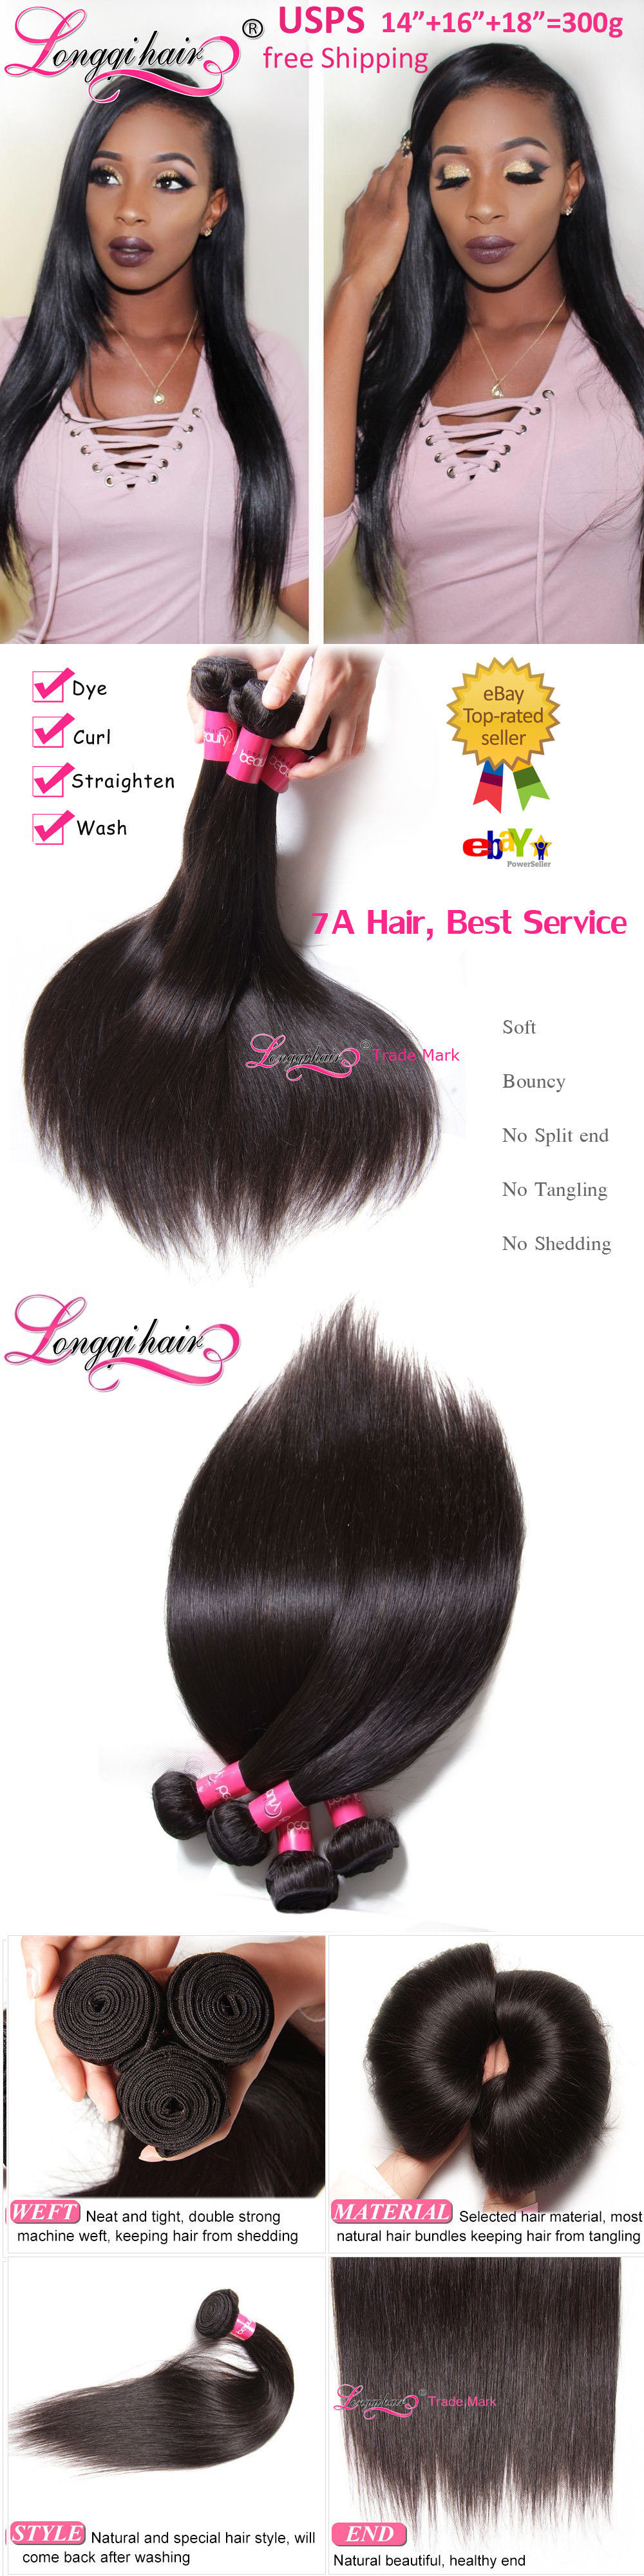 Hair Extensions 300g Thick 3 Bundles 7a 100 Unprocessed Peruvian